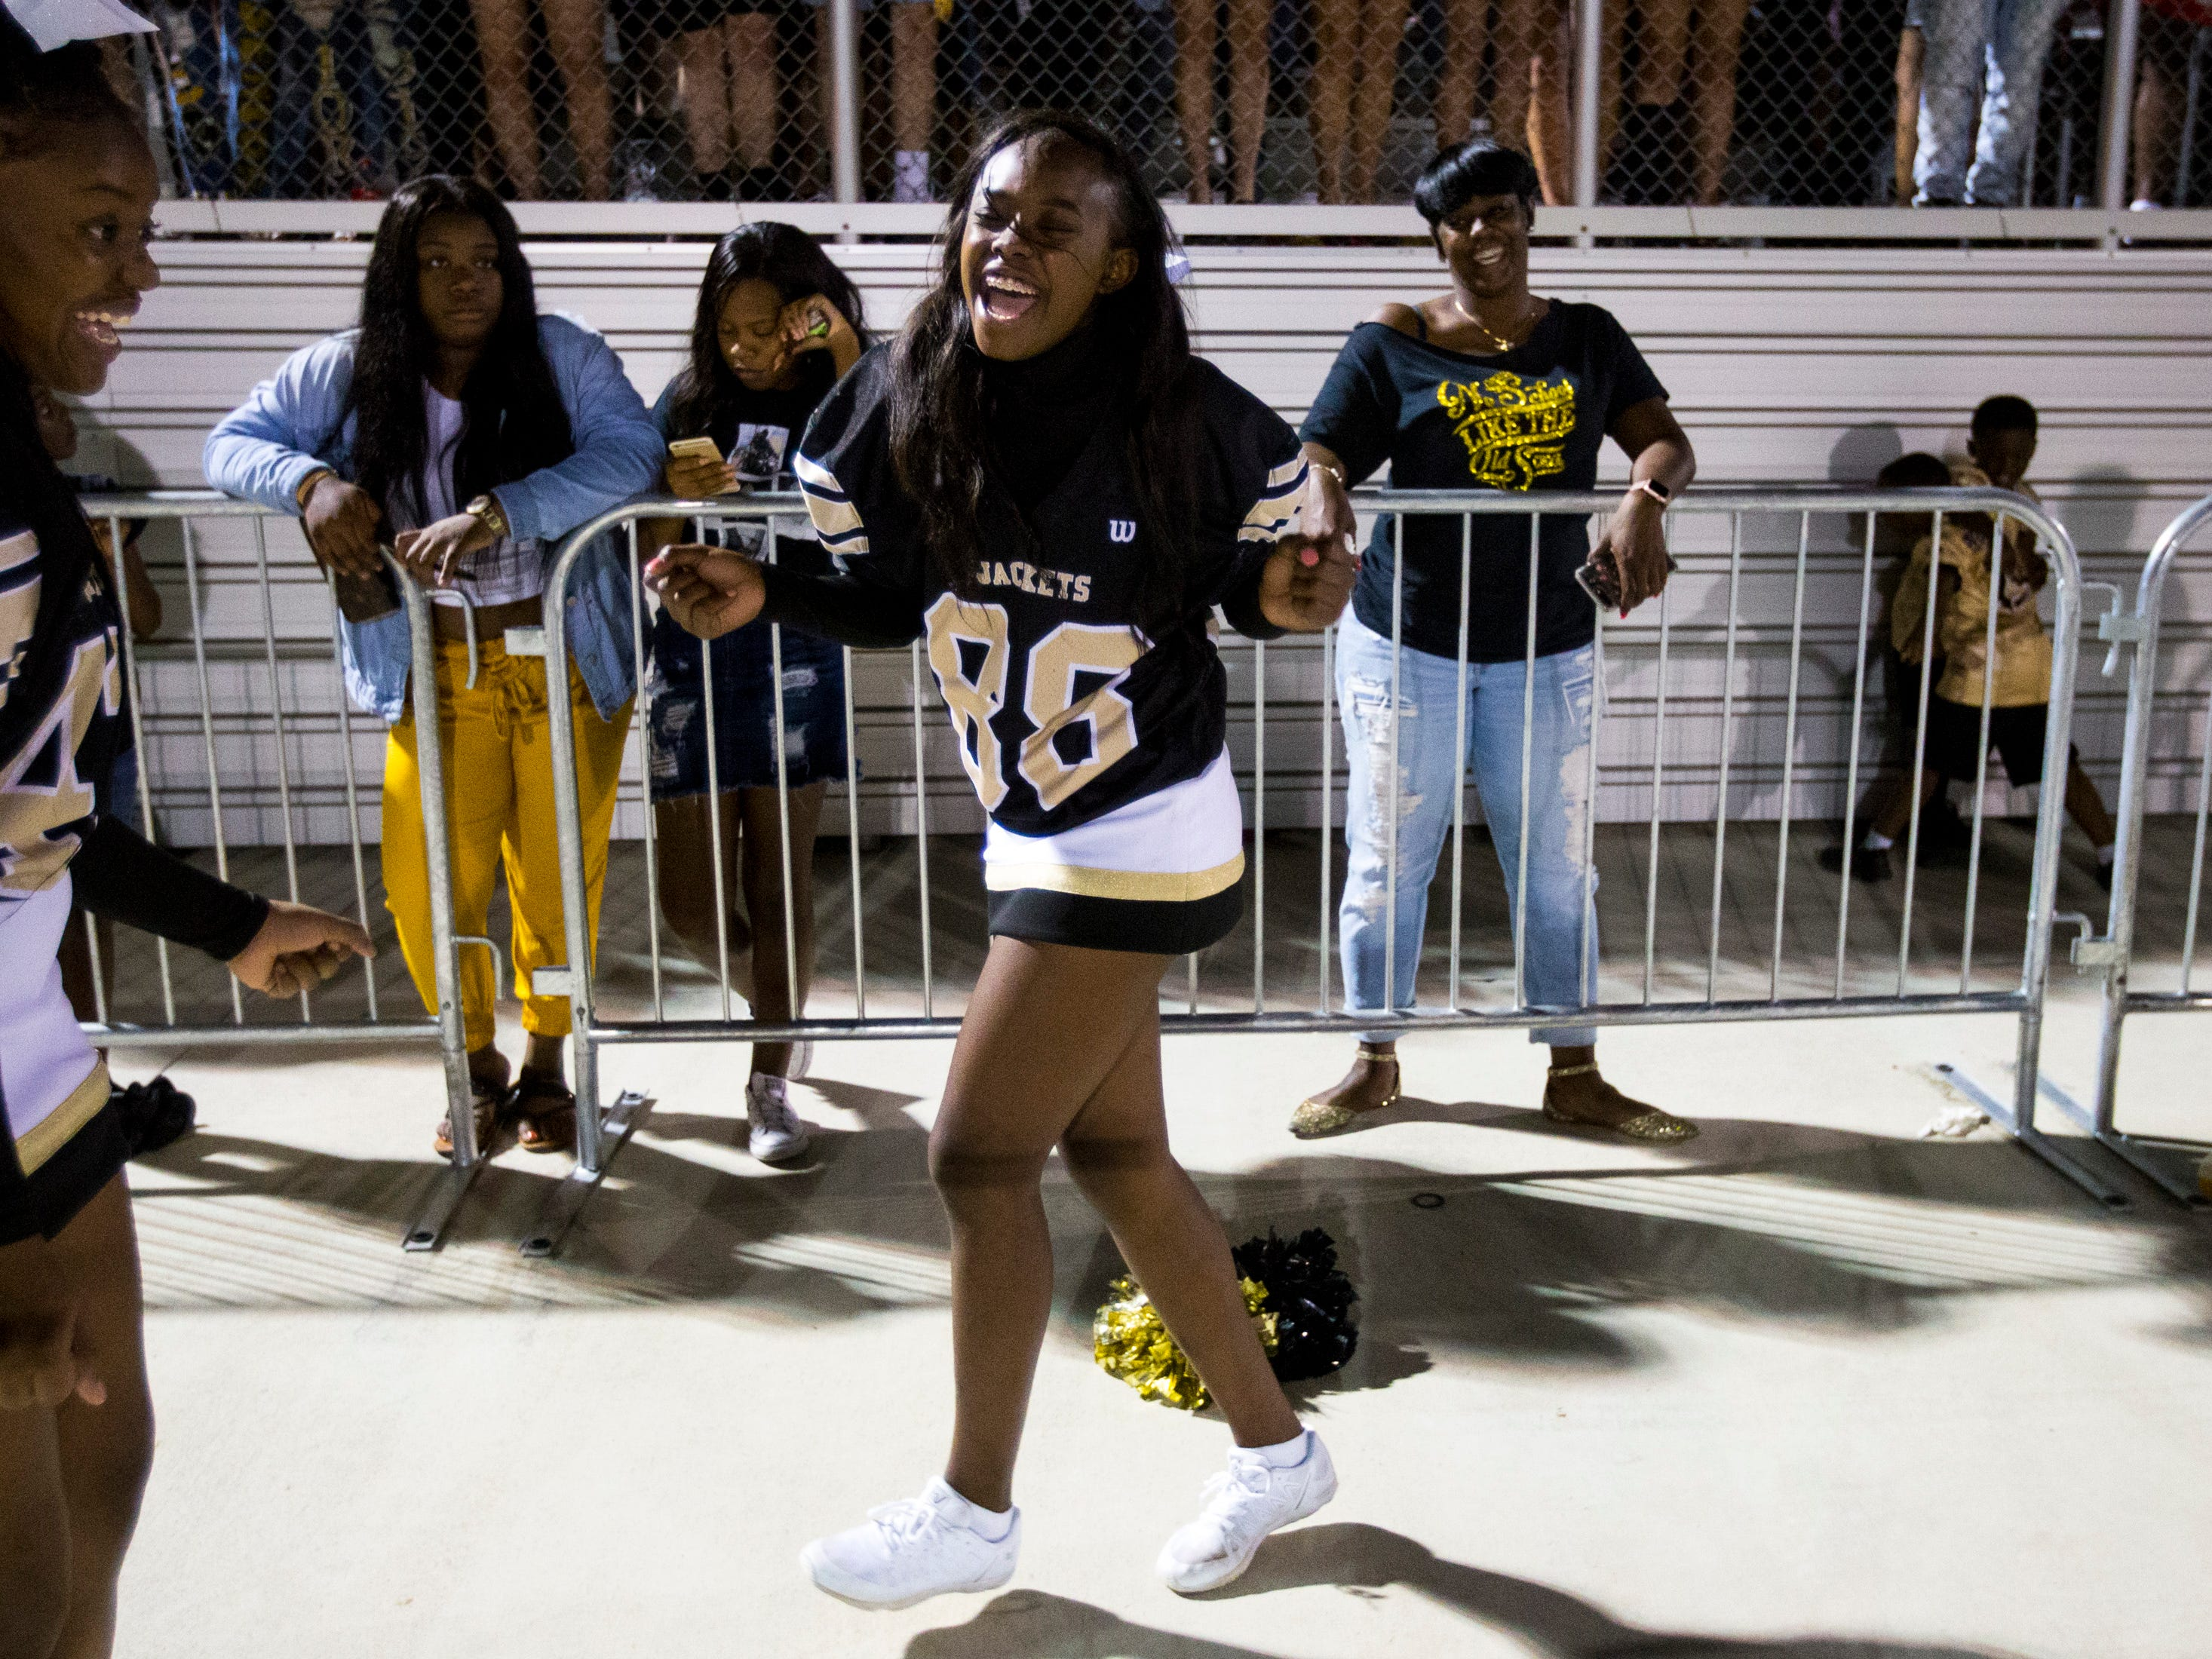 Springfield cheerleader Detreona Hurt dances after a big play during Springfield's game against White House at Springfield High School in Springfield on Friday, Sept. 14, 2018.